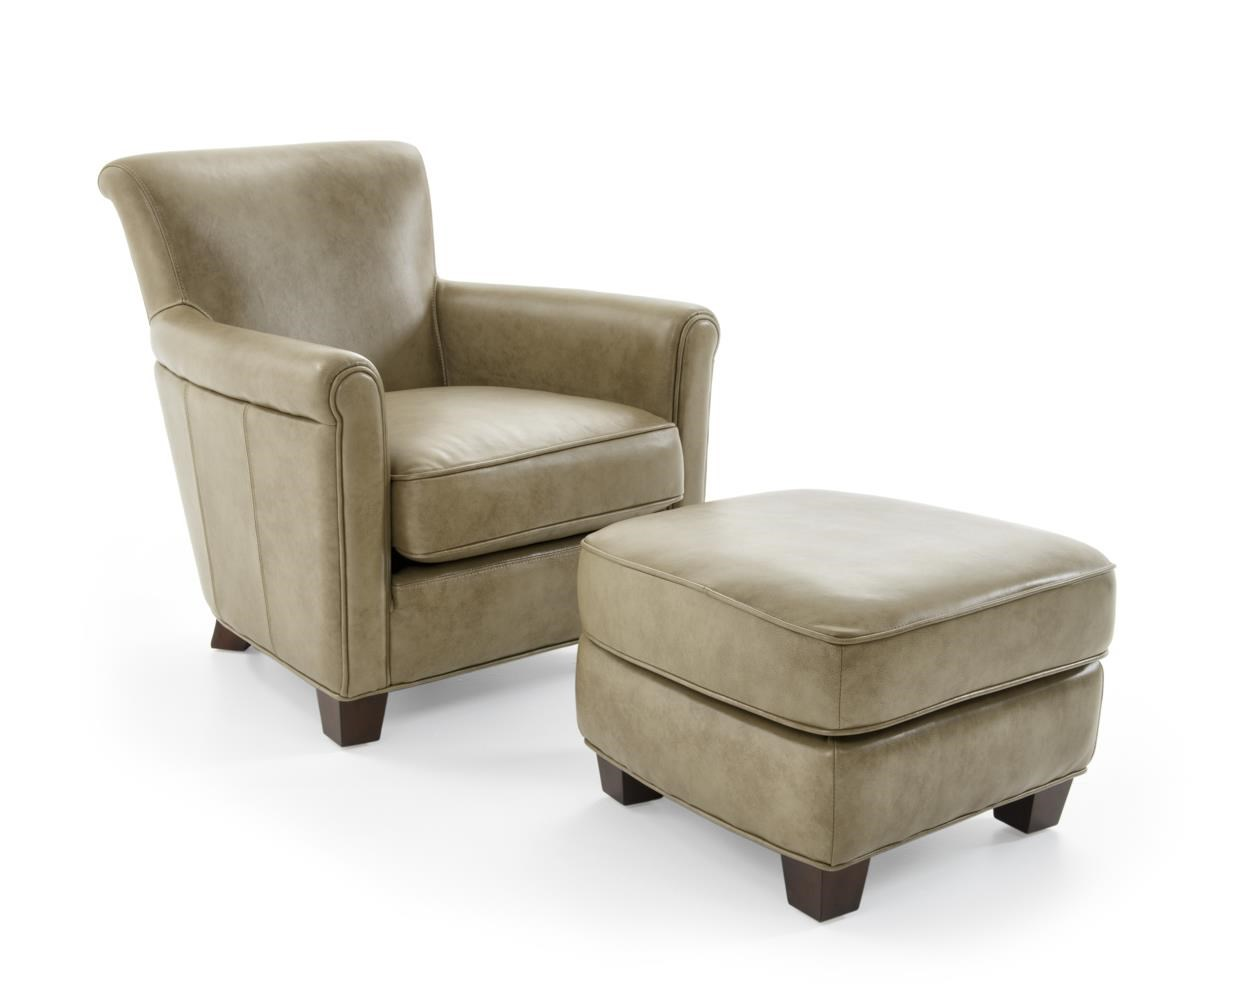 Futura Leather 6307 Chair and Ottoman Set - Item Number: 6307-10+ 6307-63-1420F SANIBEL